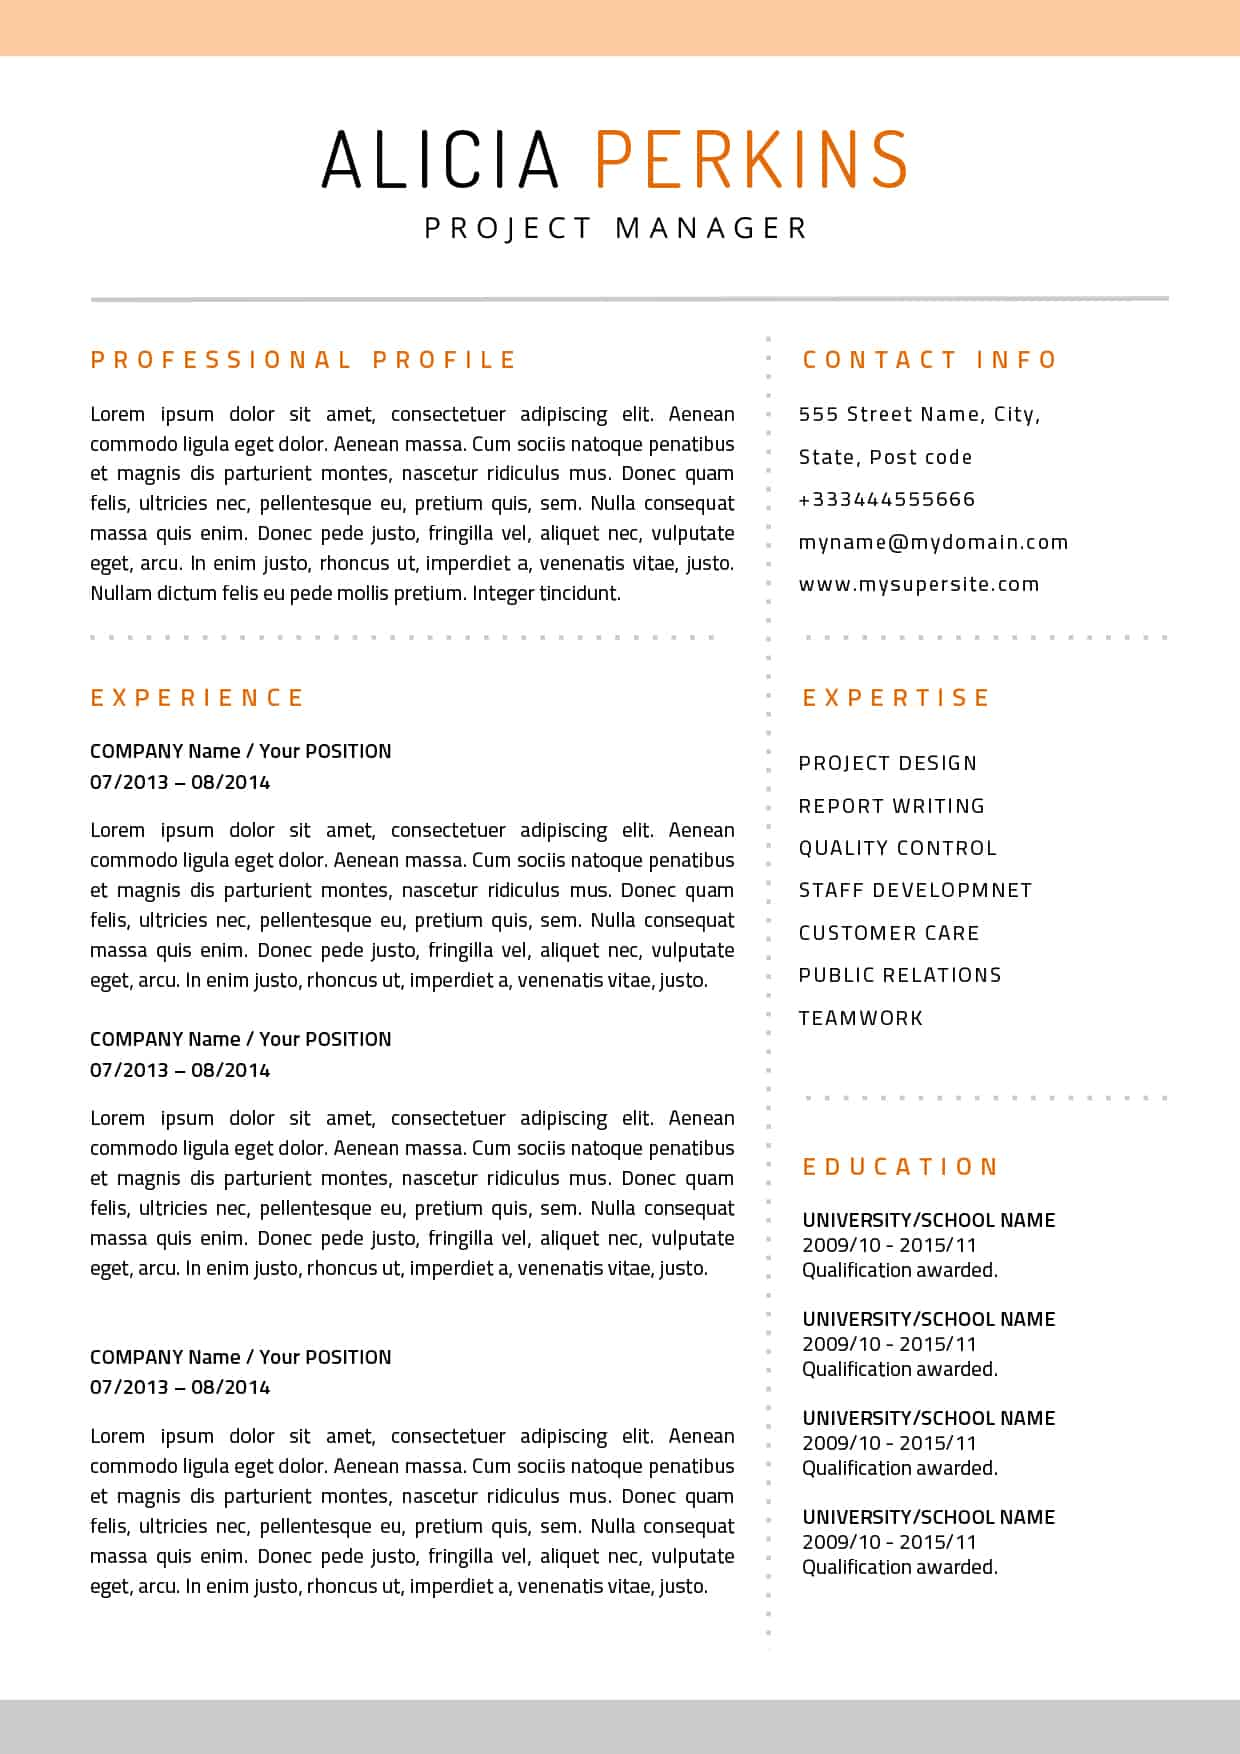 top resume templates for mac hashthemes - Mac Pages Resume Templates